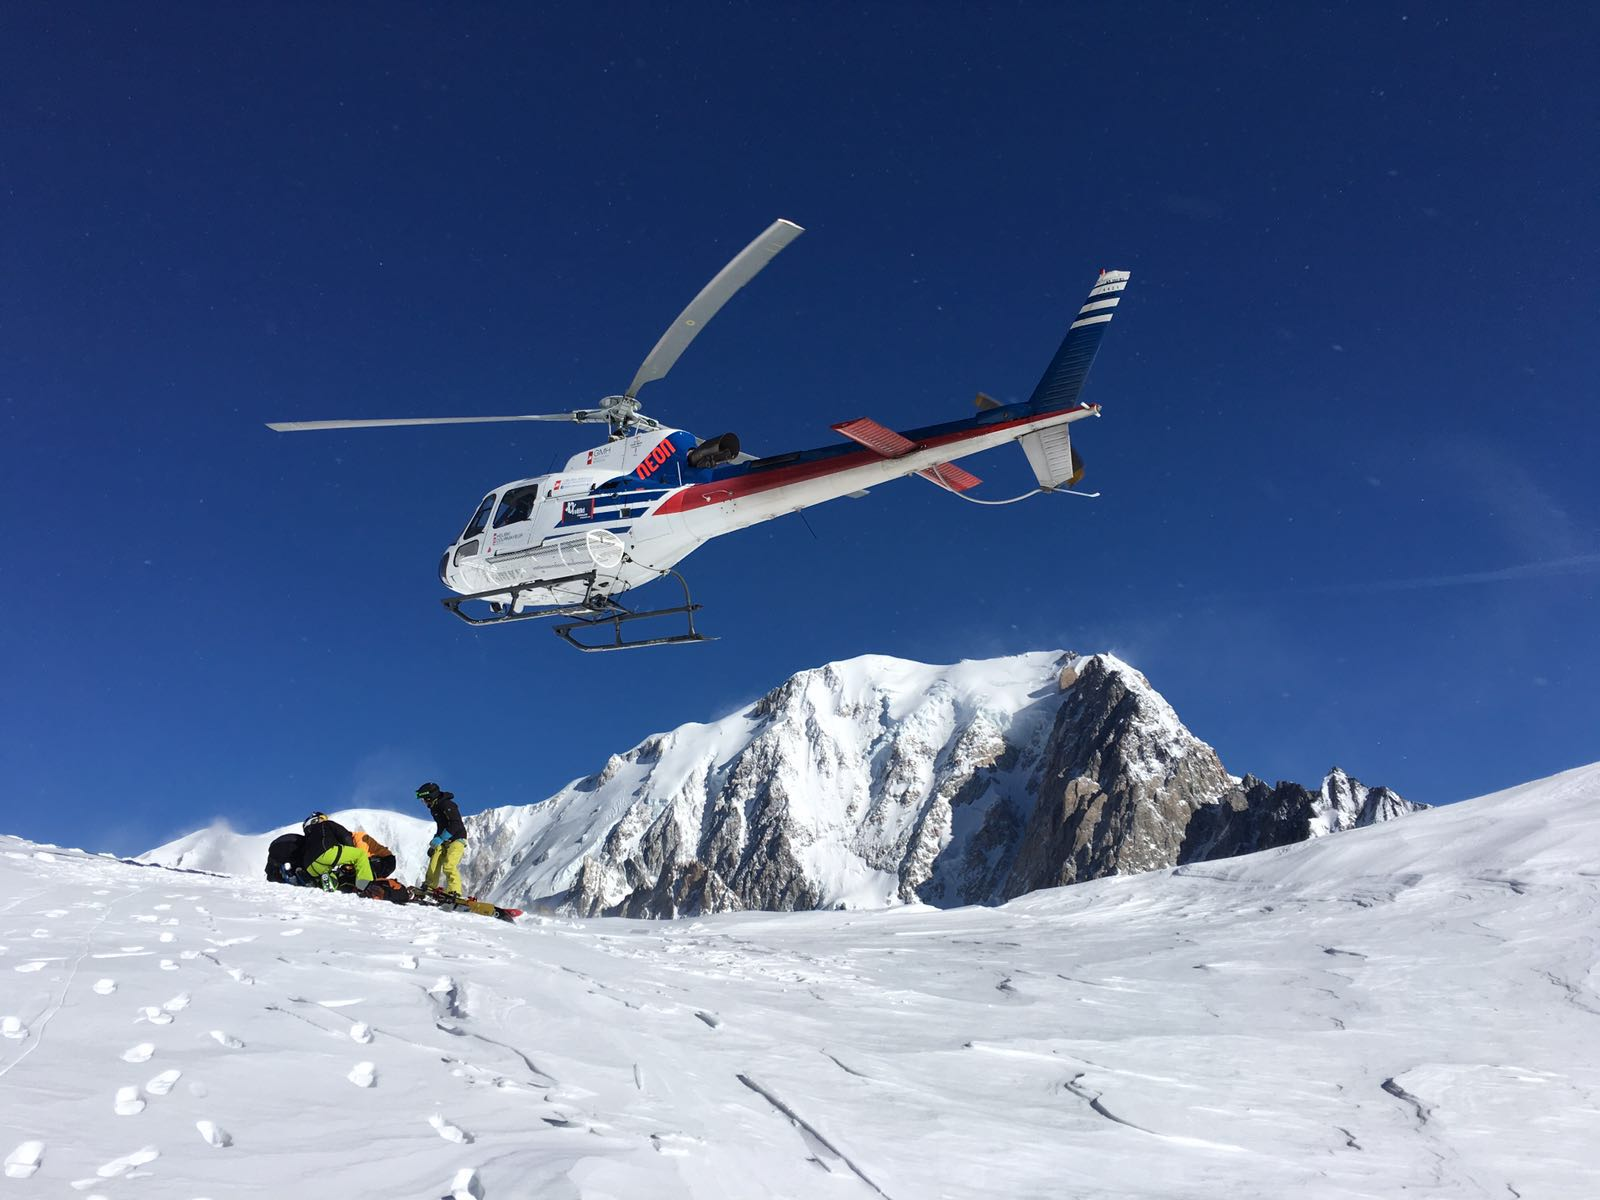 Heli-skiing in Switzerland - Swisskisafari